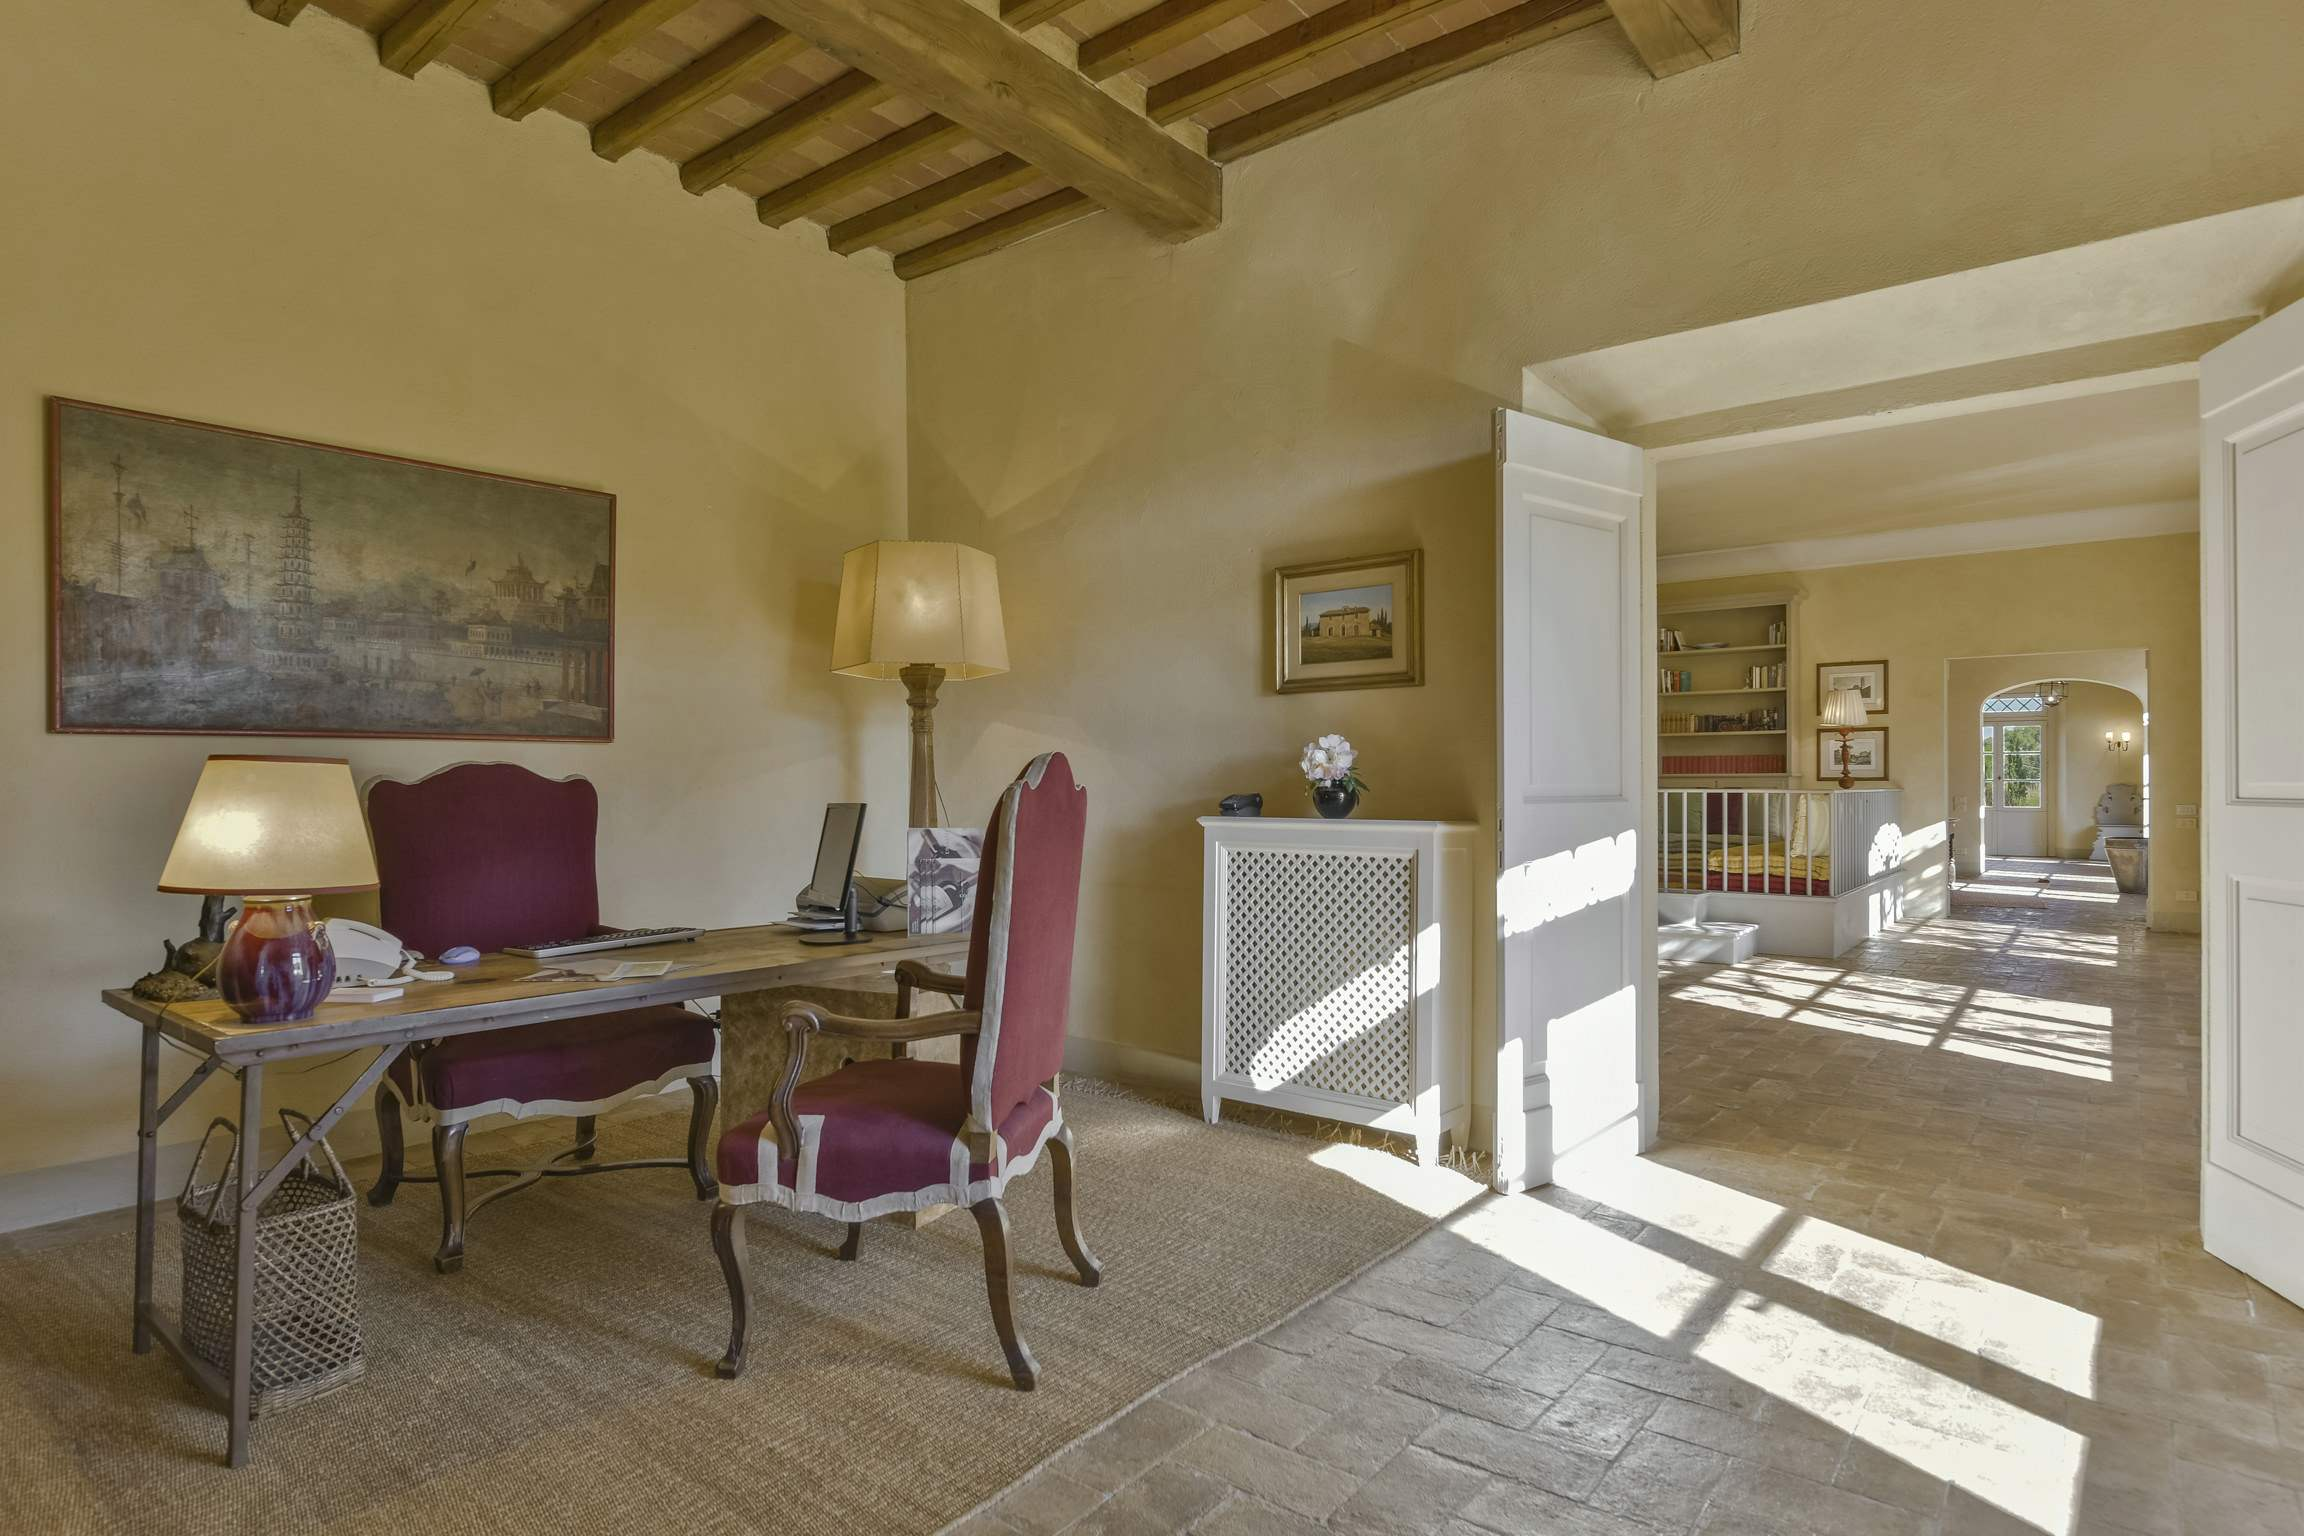 Villa Maremma 1, 7 bedroom villa in South Tuscany - Maremma, Tuscany Photo #6